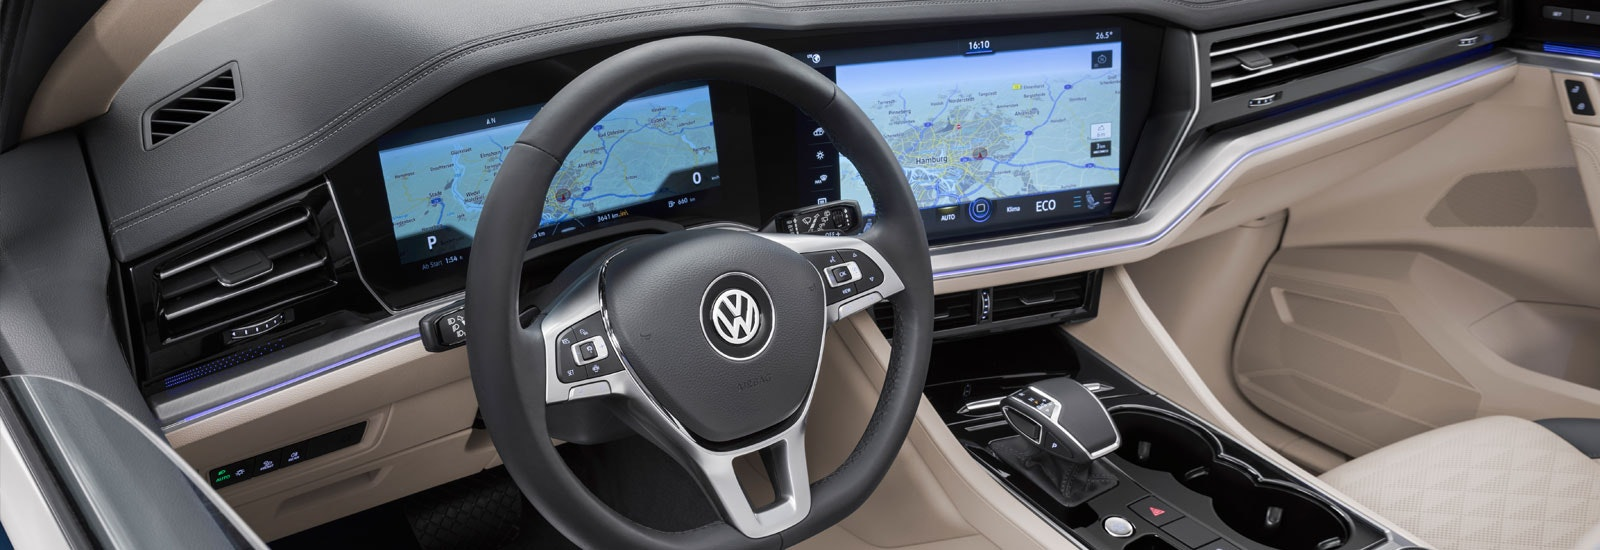 Vw Touareg 4x4 Suv Price Specs Release Date Carwow